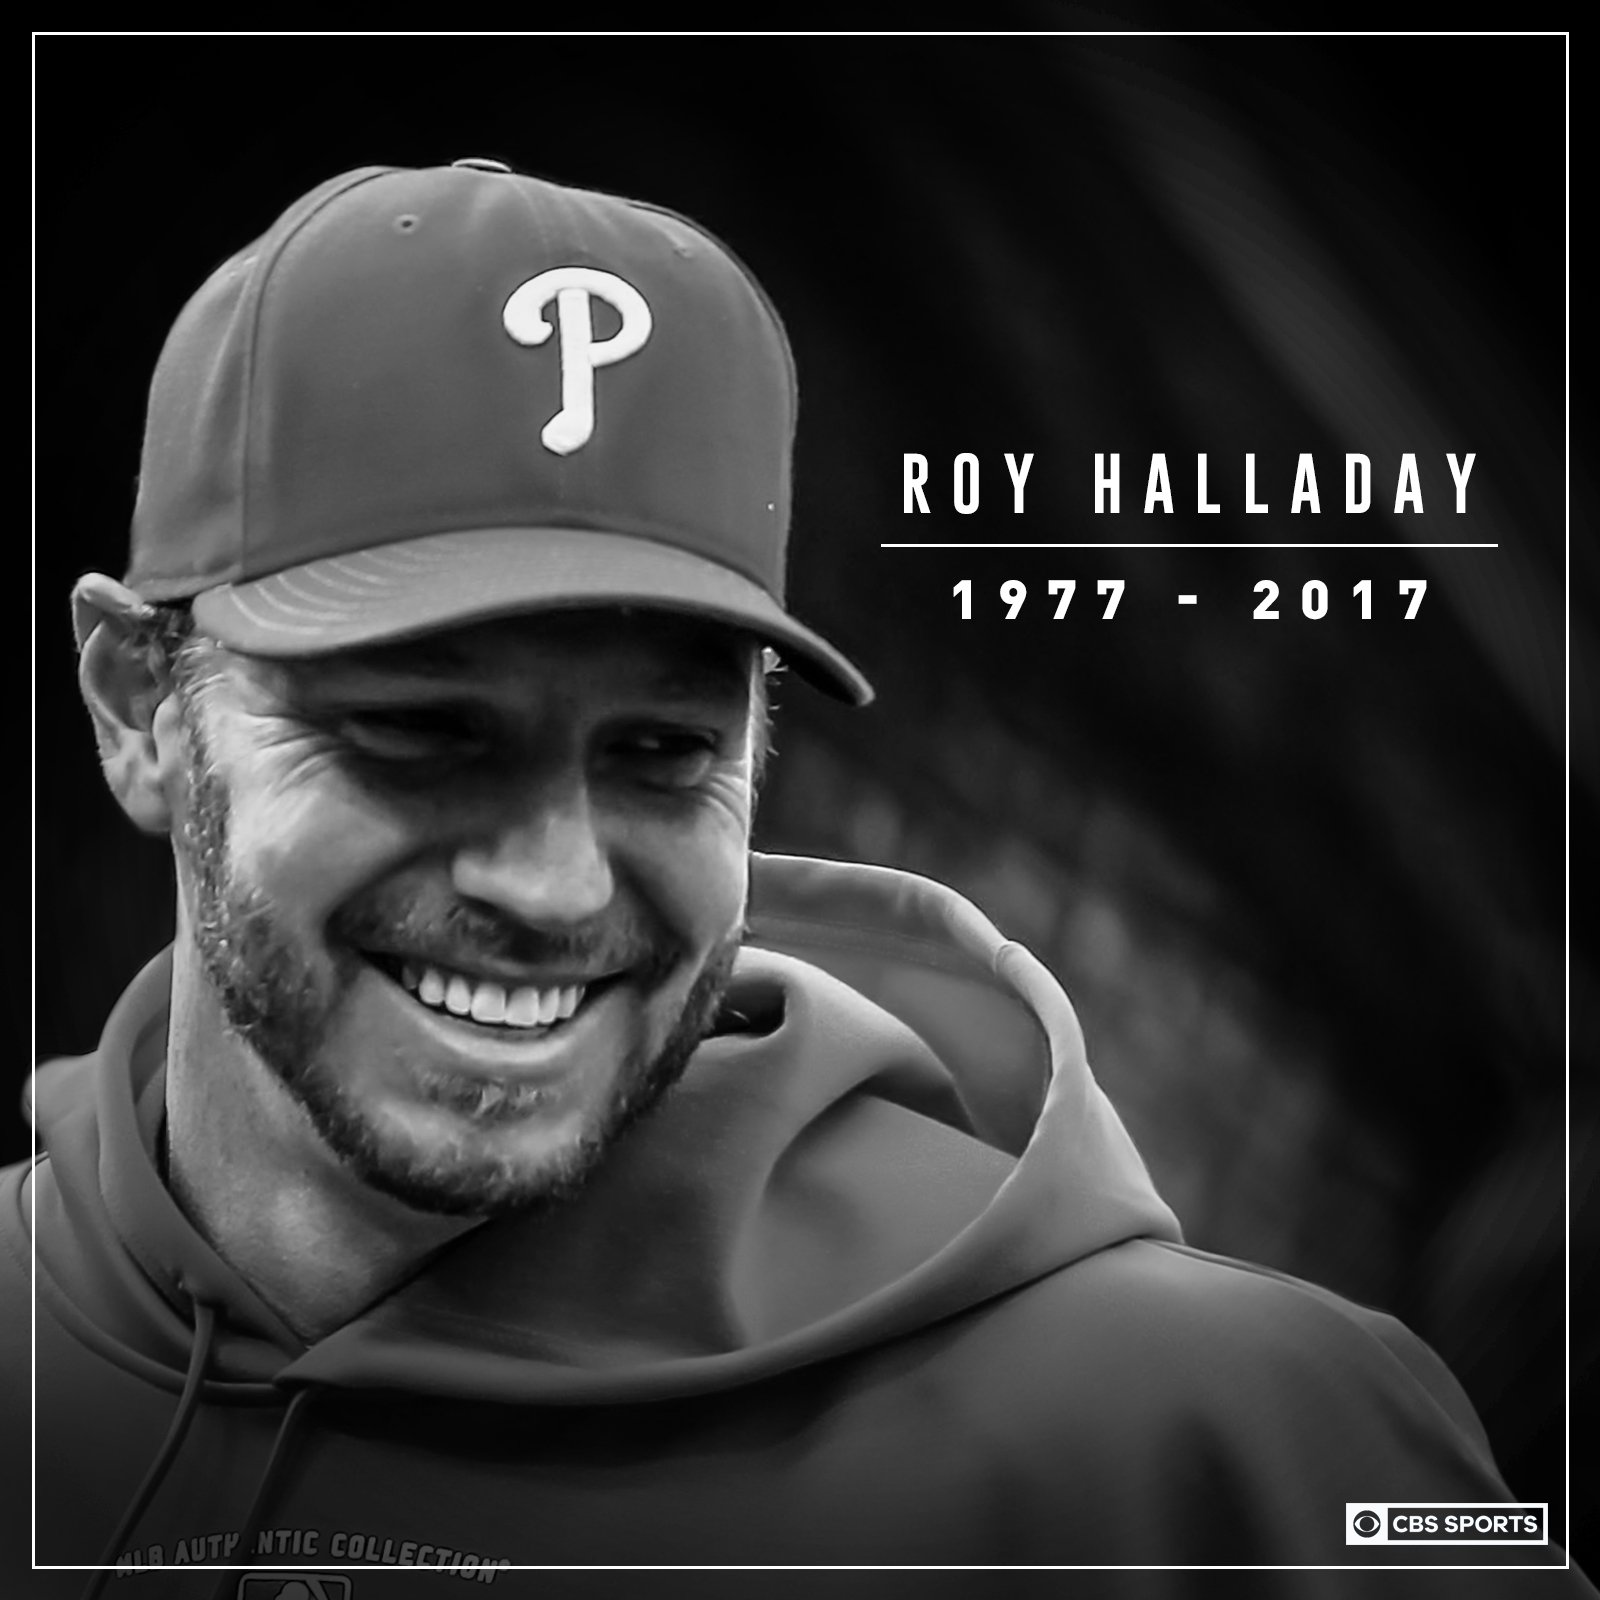 Former MLB Pitcher Roy Halladay has died in a plane crash. https://t.co/Kqmu2ohDmZ